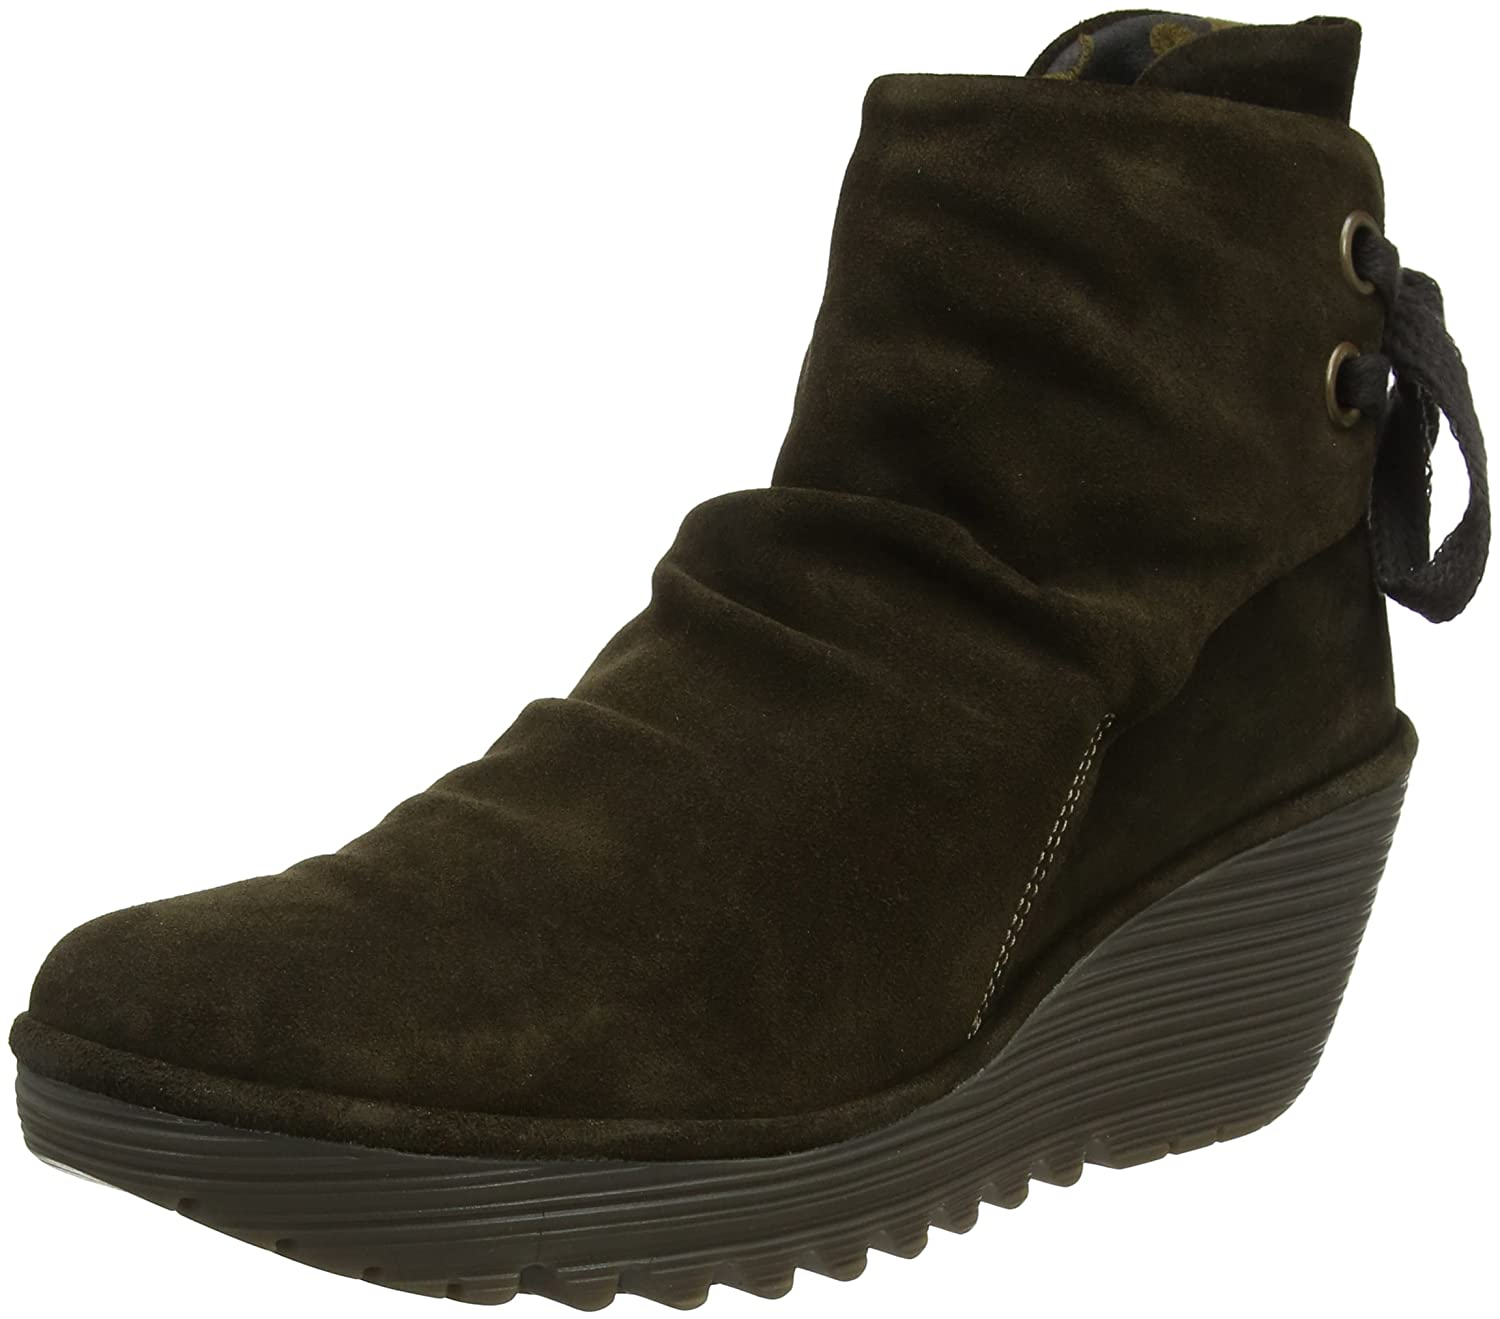 FLY London Women's Yama Ankle Boot B00K8567D6 42 M EU / 11-11.5 B(M) US|Sludge Oiled